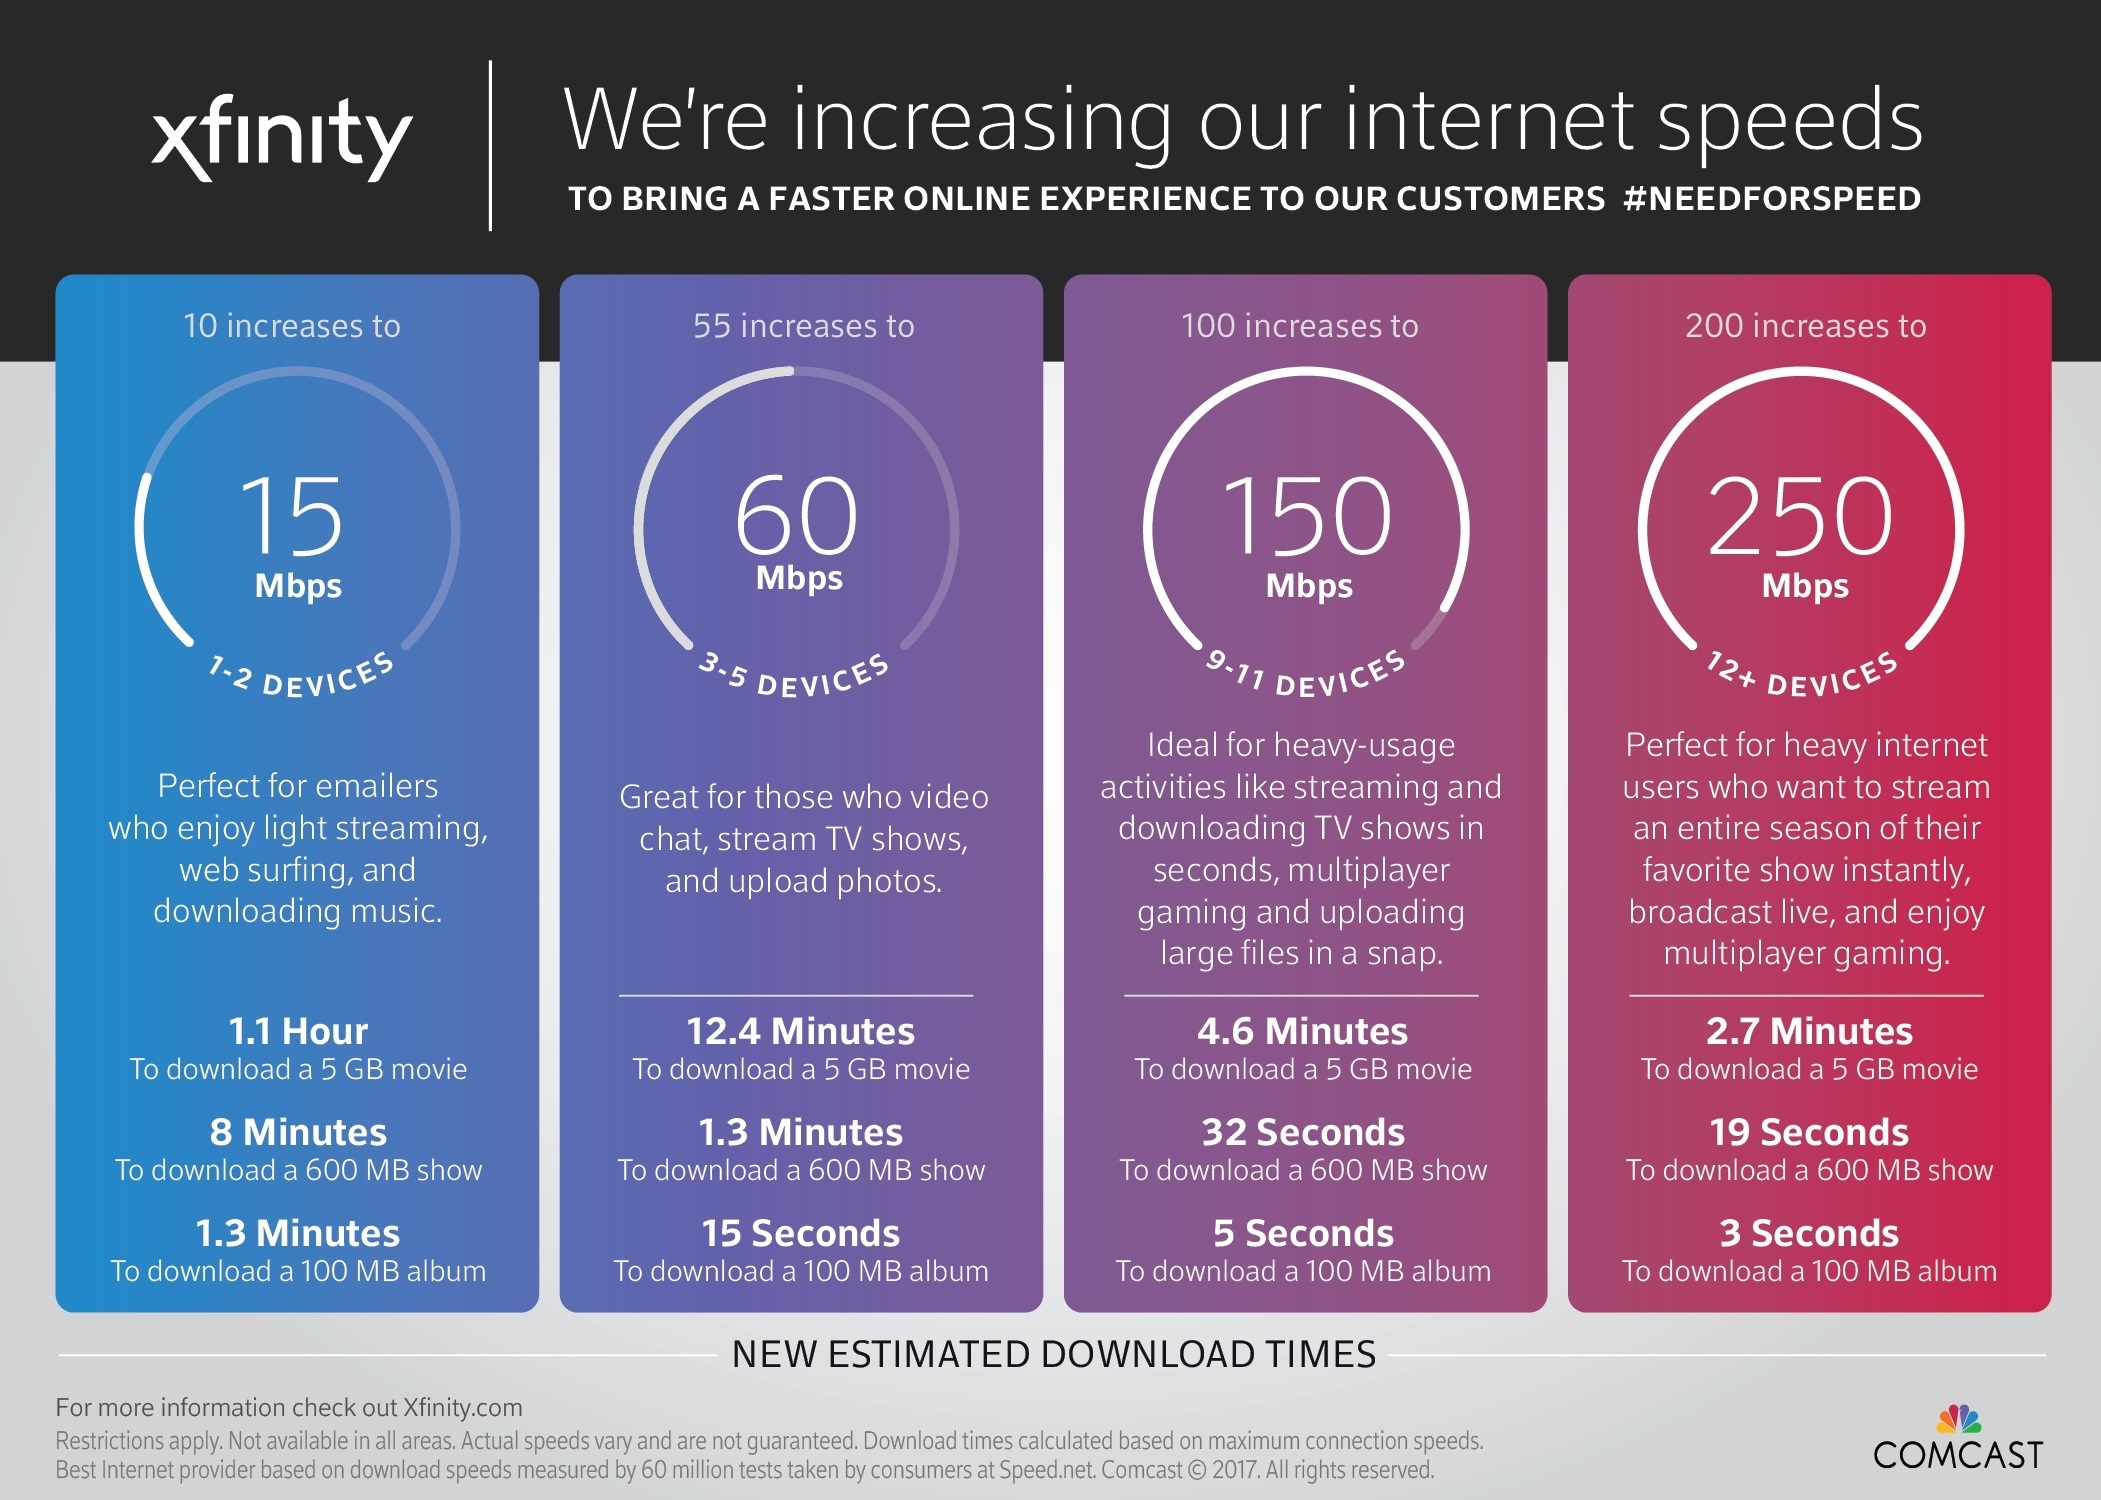 Comcast Internet Packages >> Comcast To Increase Internet Speeds For Twin Cities Customers At No